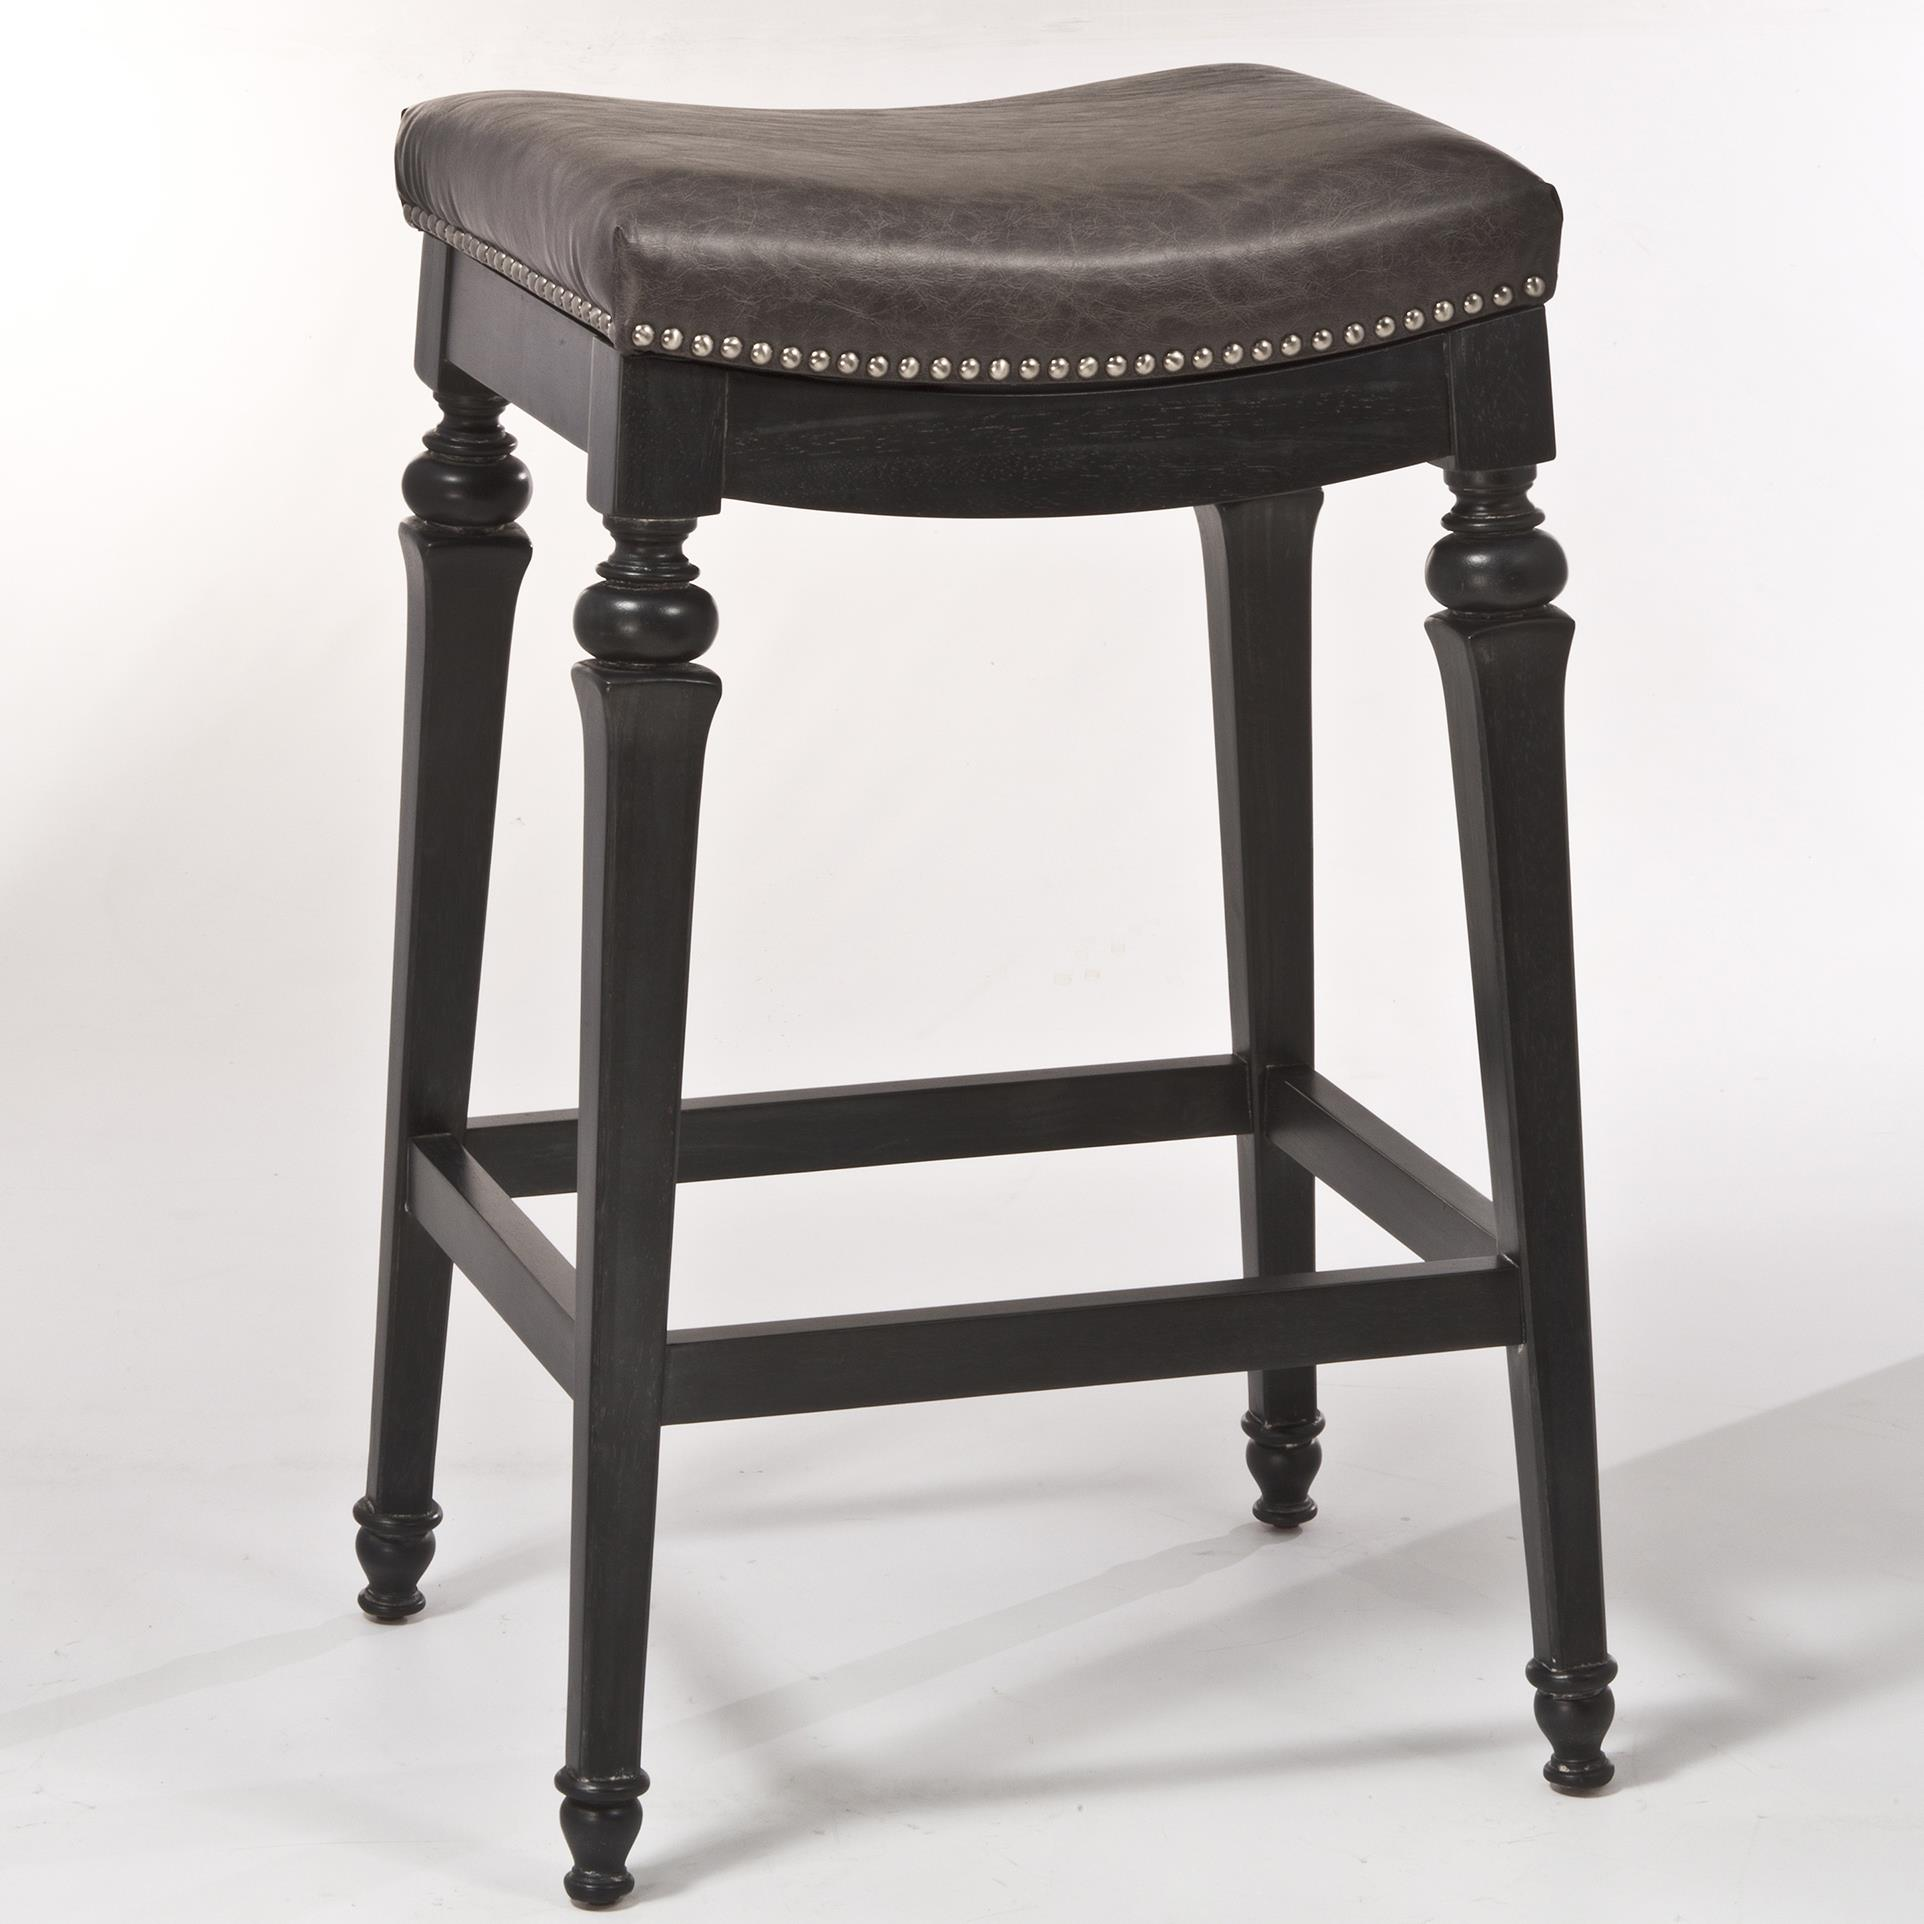 Hillsdale Backless Bar Stools Backless Non